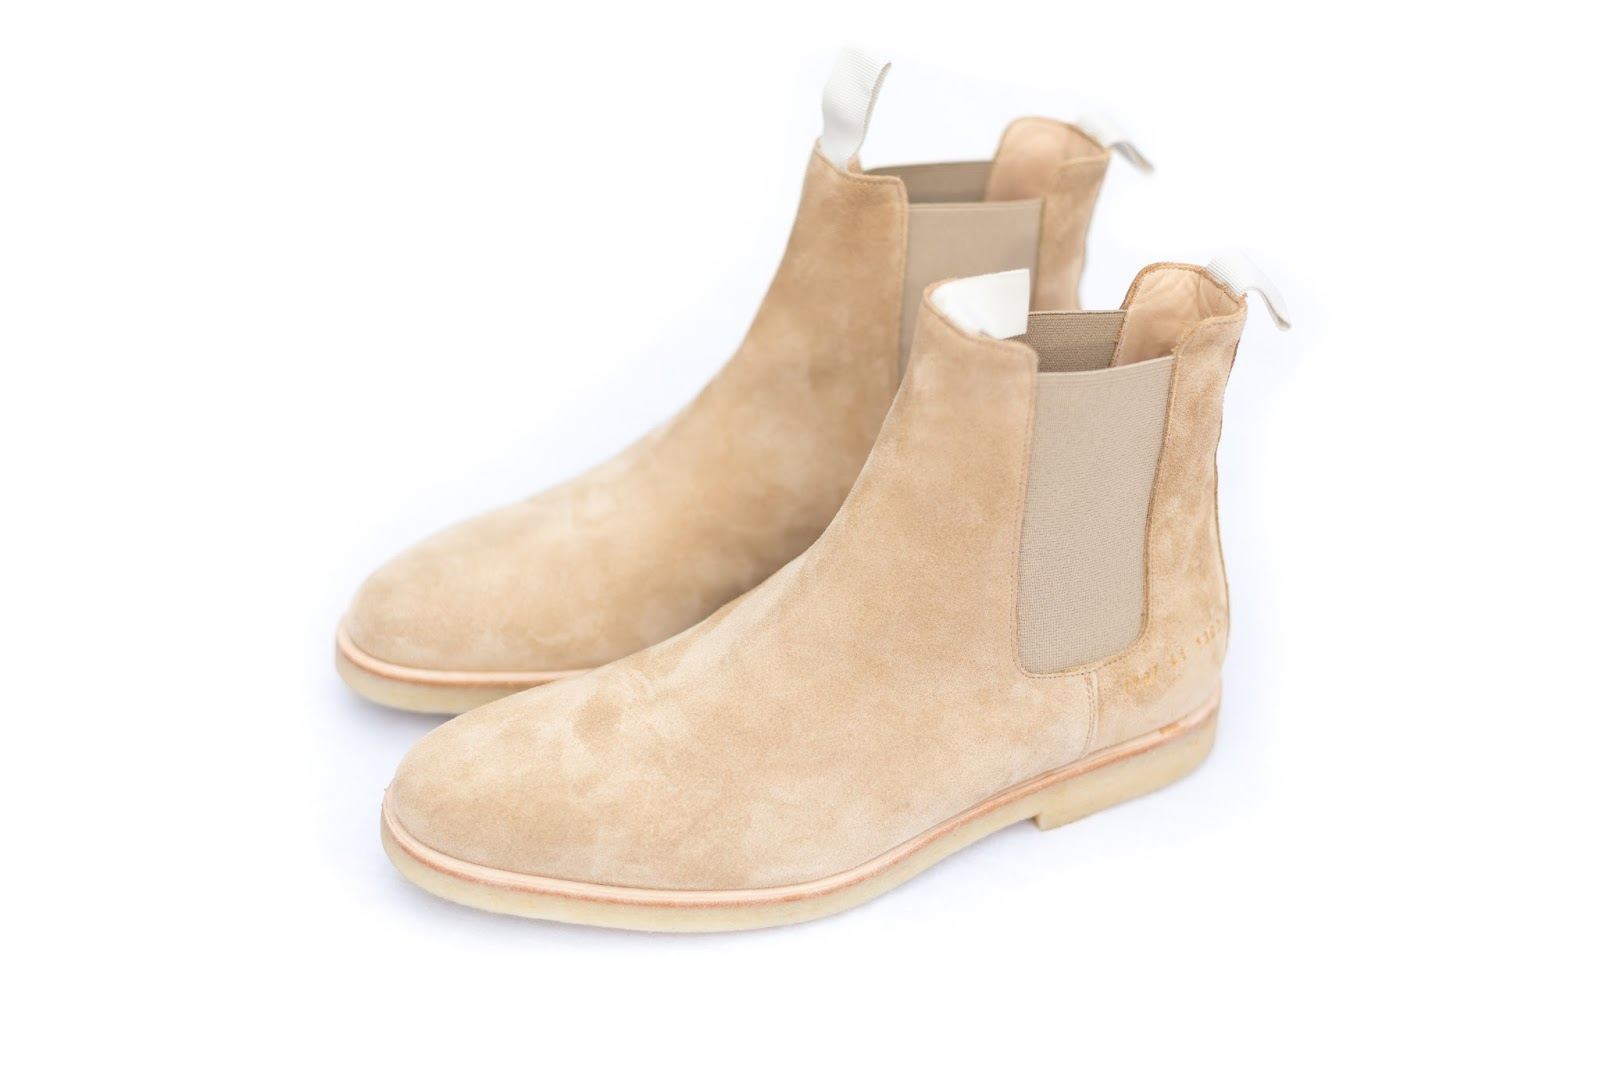 aba9791b0a0ce0 Common Projects  Tan  S S 15